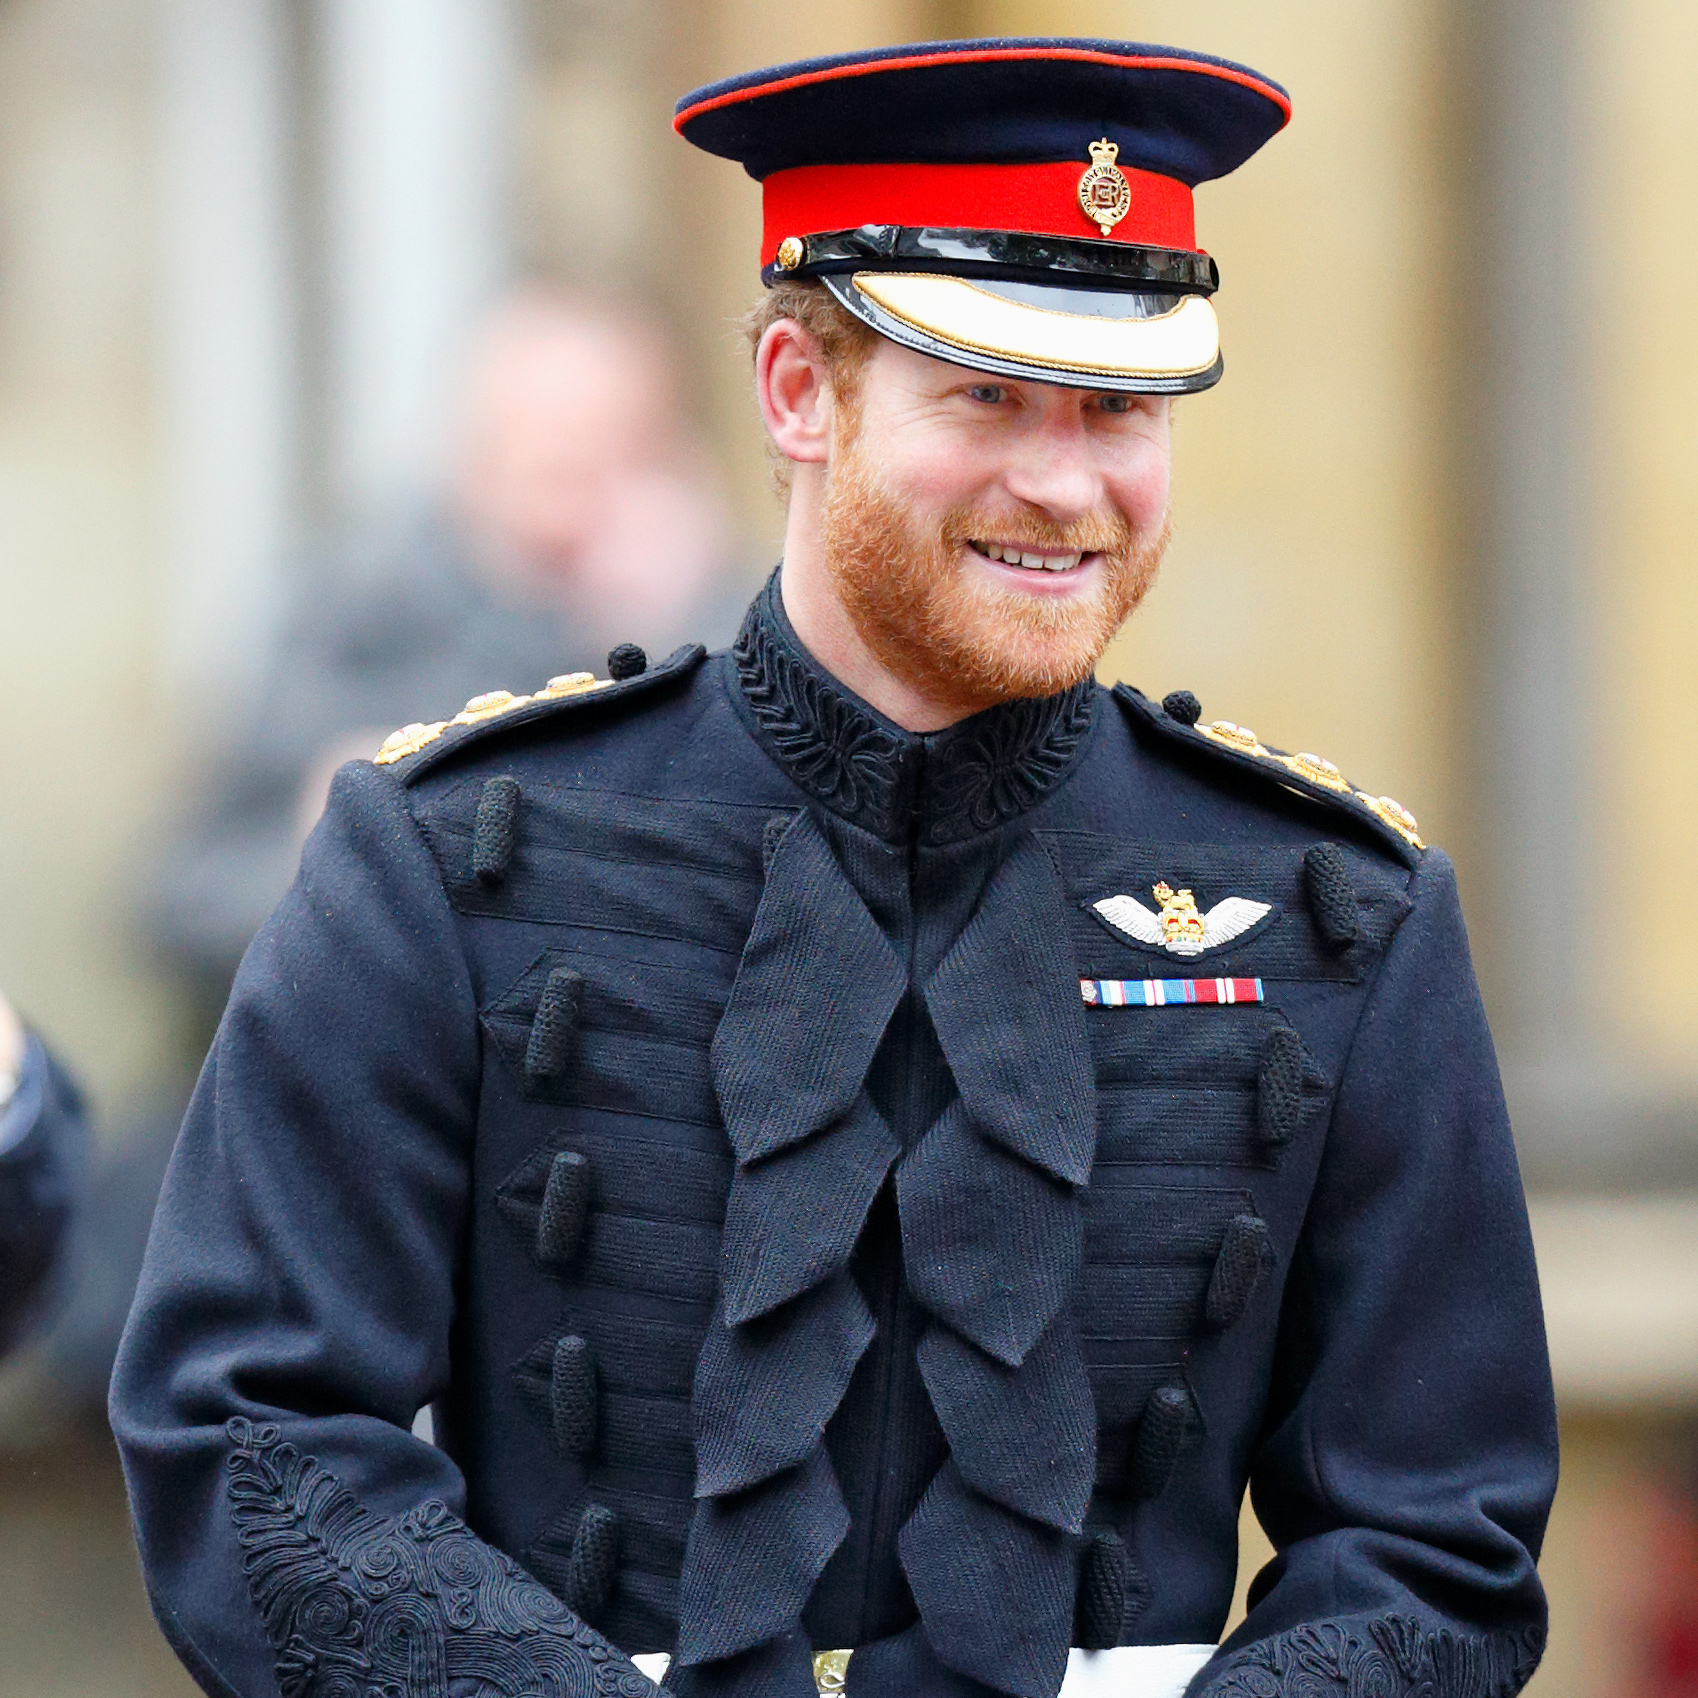 Prince Harry Is Taking on an Important New Role Before His Wedding to Meghan Markle